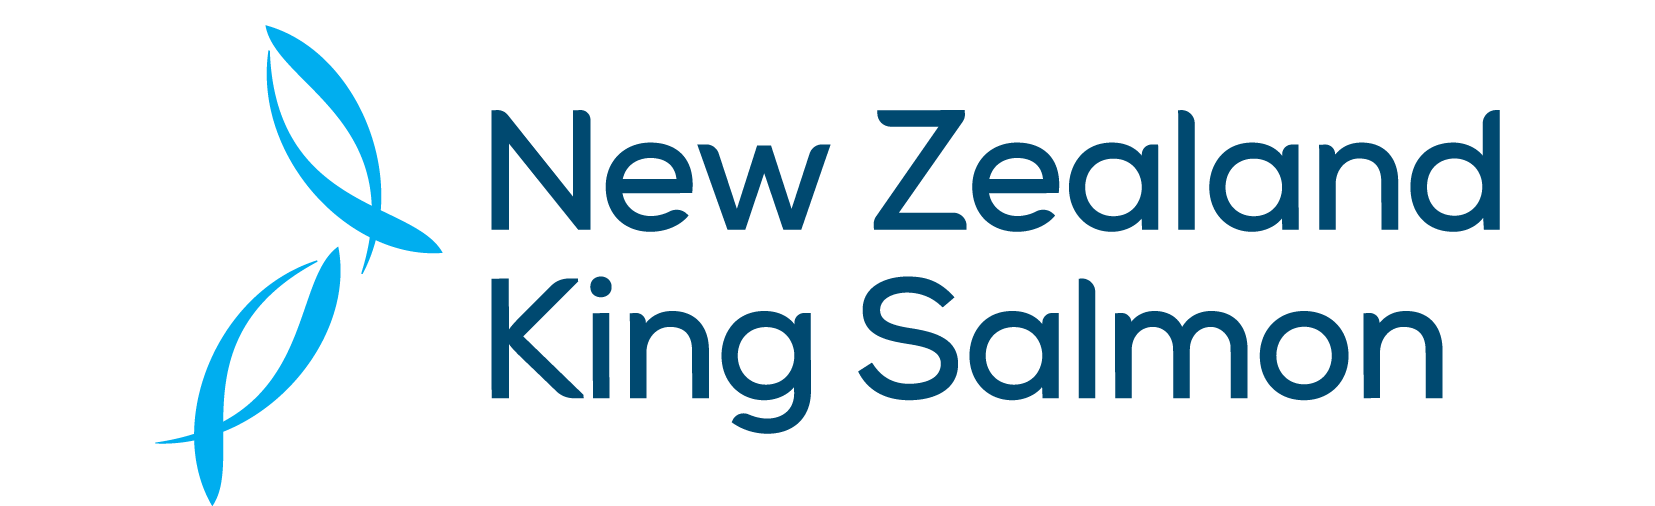 The New Zealand King Salmon Co Logo